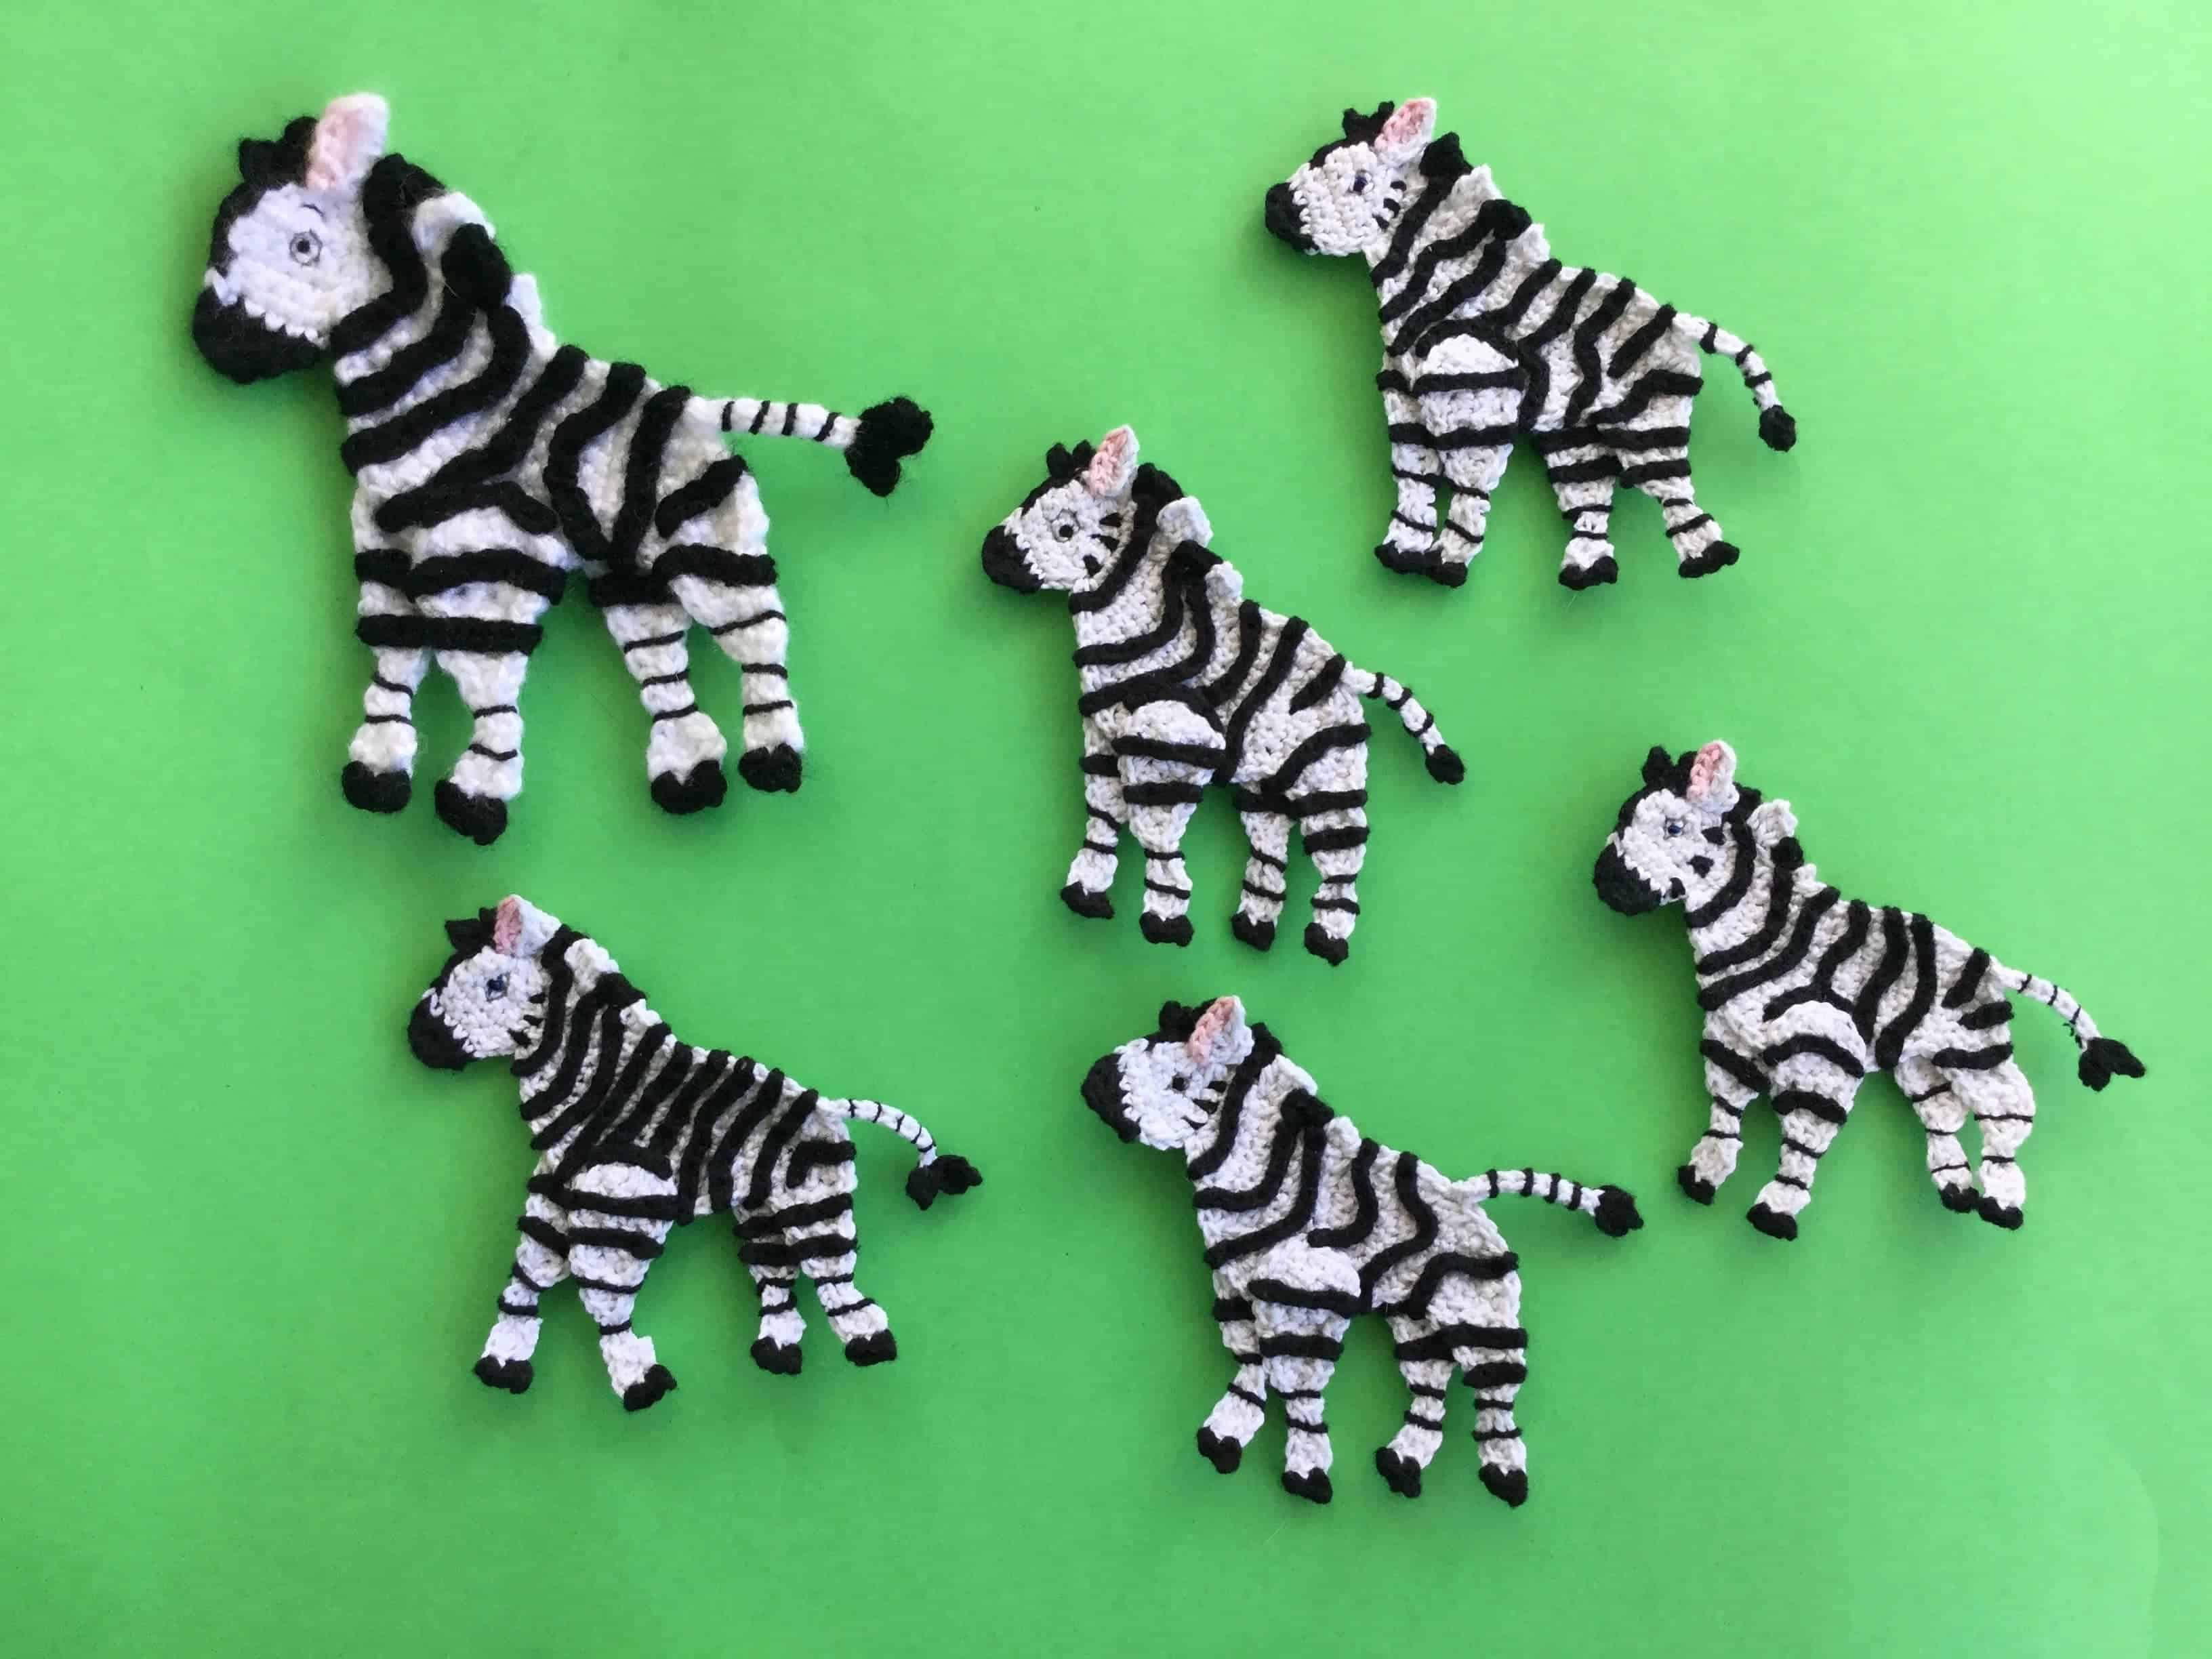 Finished crochet zebra group landscape